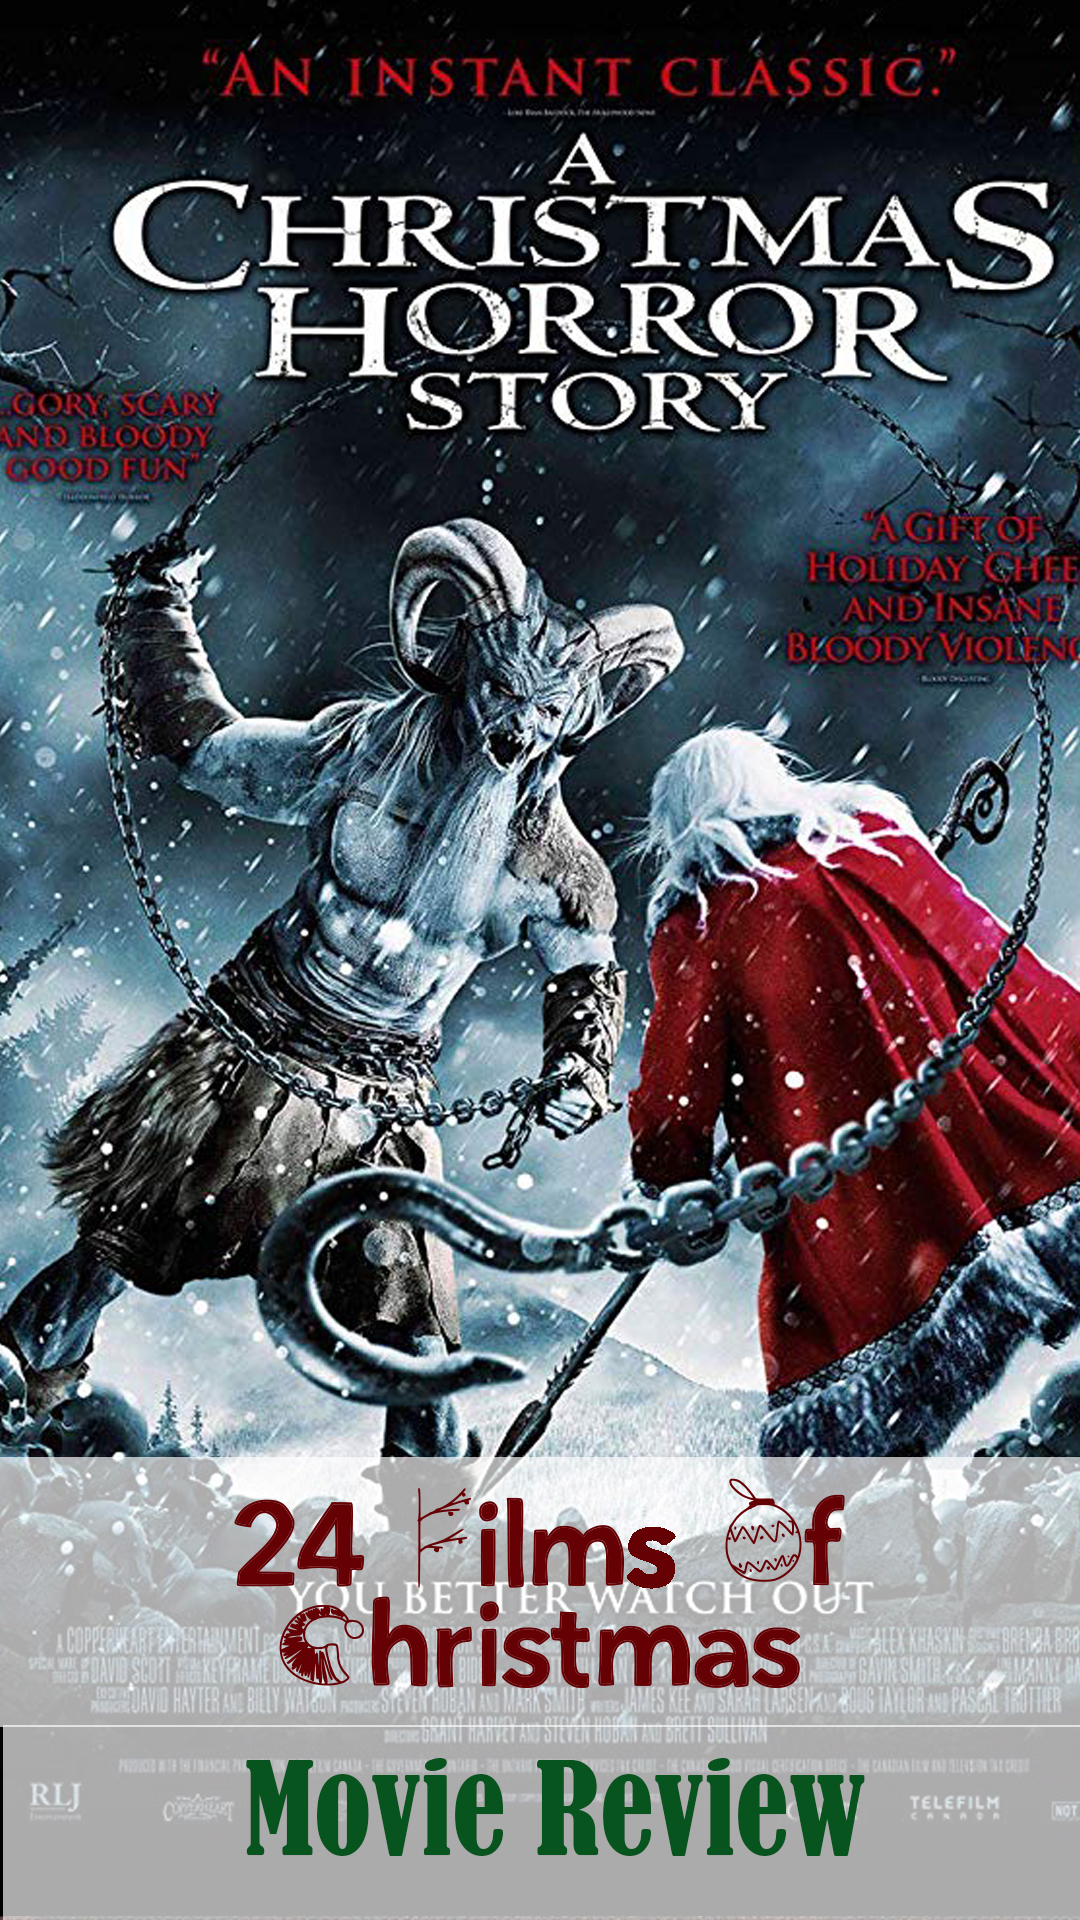 A Christmas Horror Story Film Review